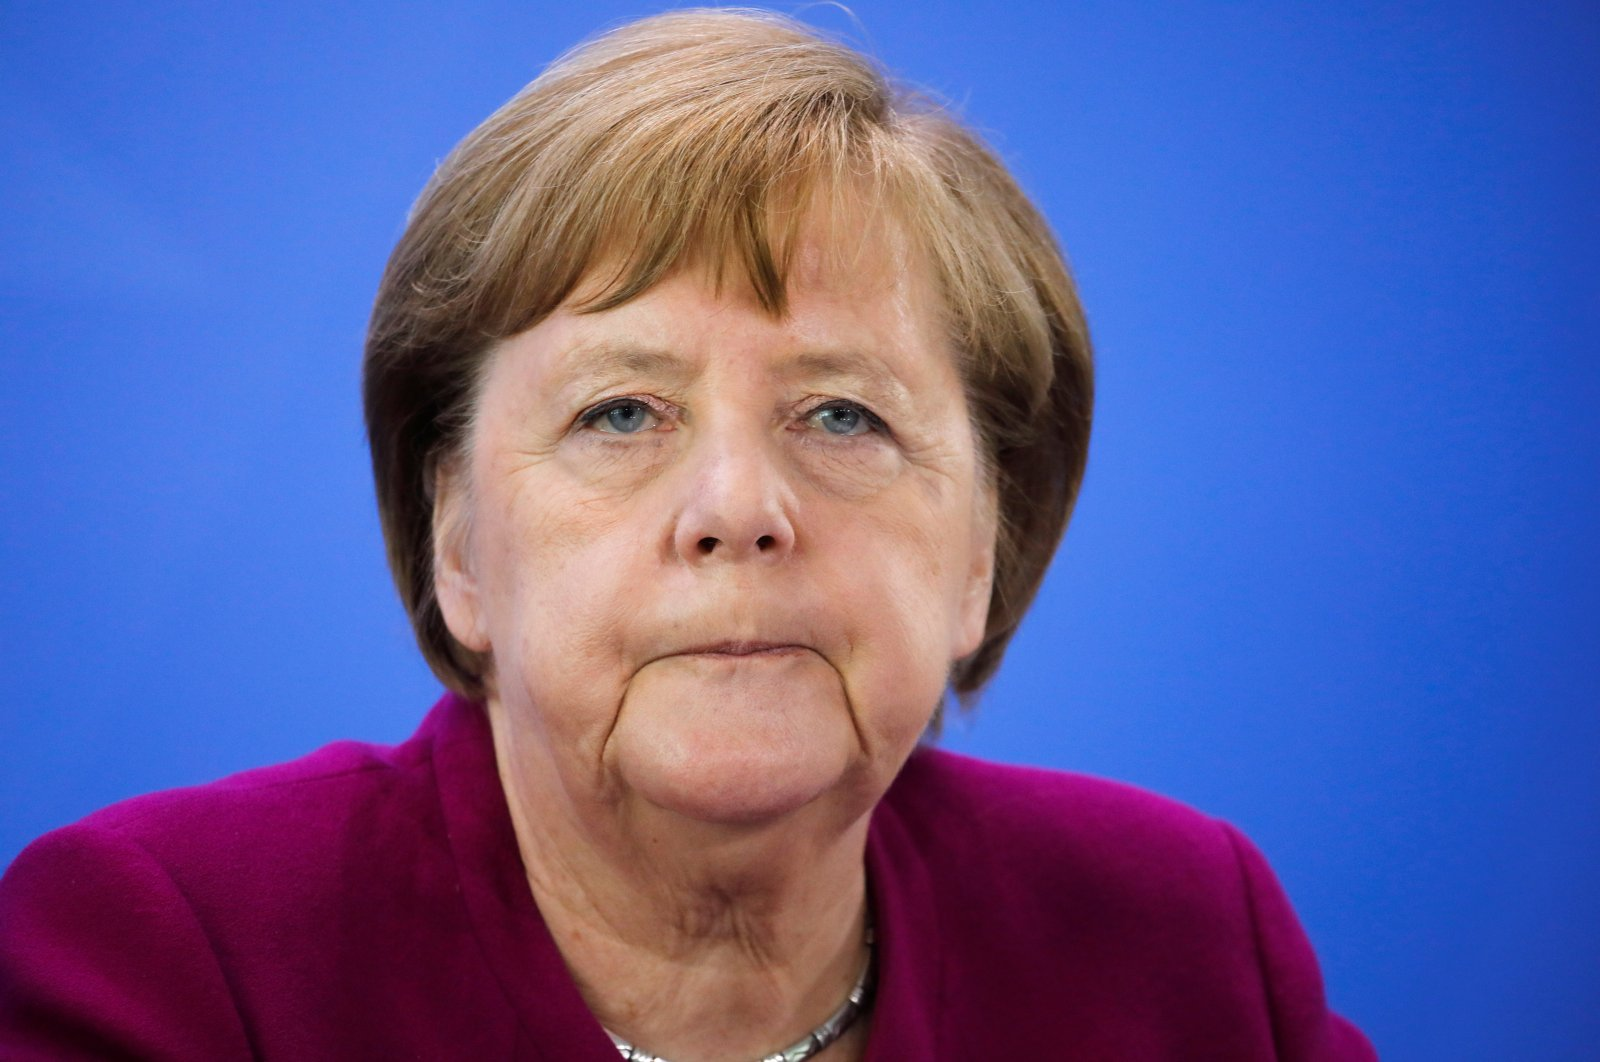 German Chancellor Angela Merkel briefs the media after a meeting with German federal state governors at the Chancellery in Berlin, Germany, May 27, 2020. REUTERS